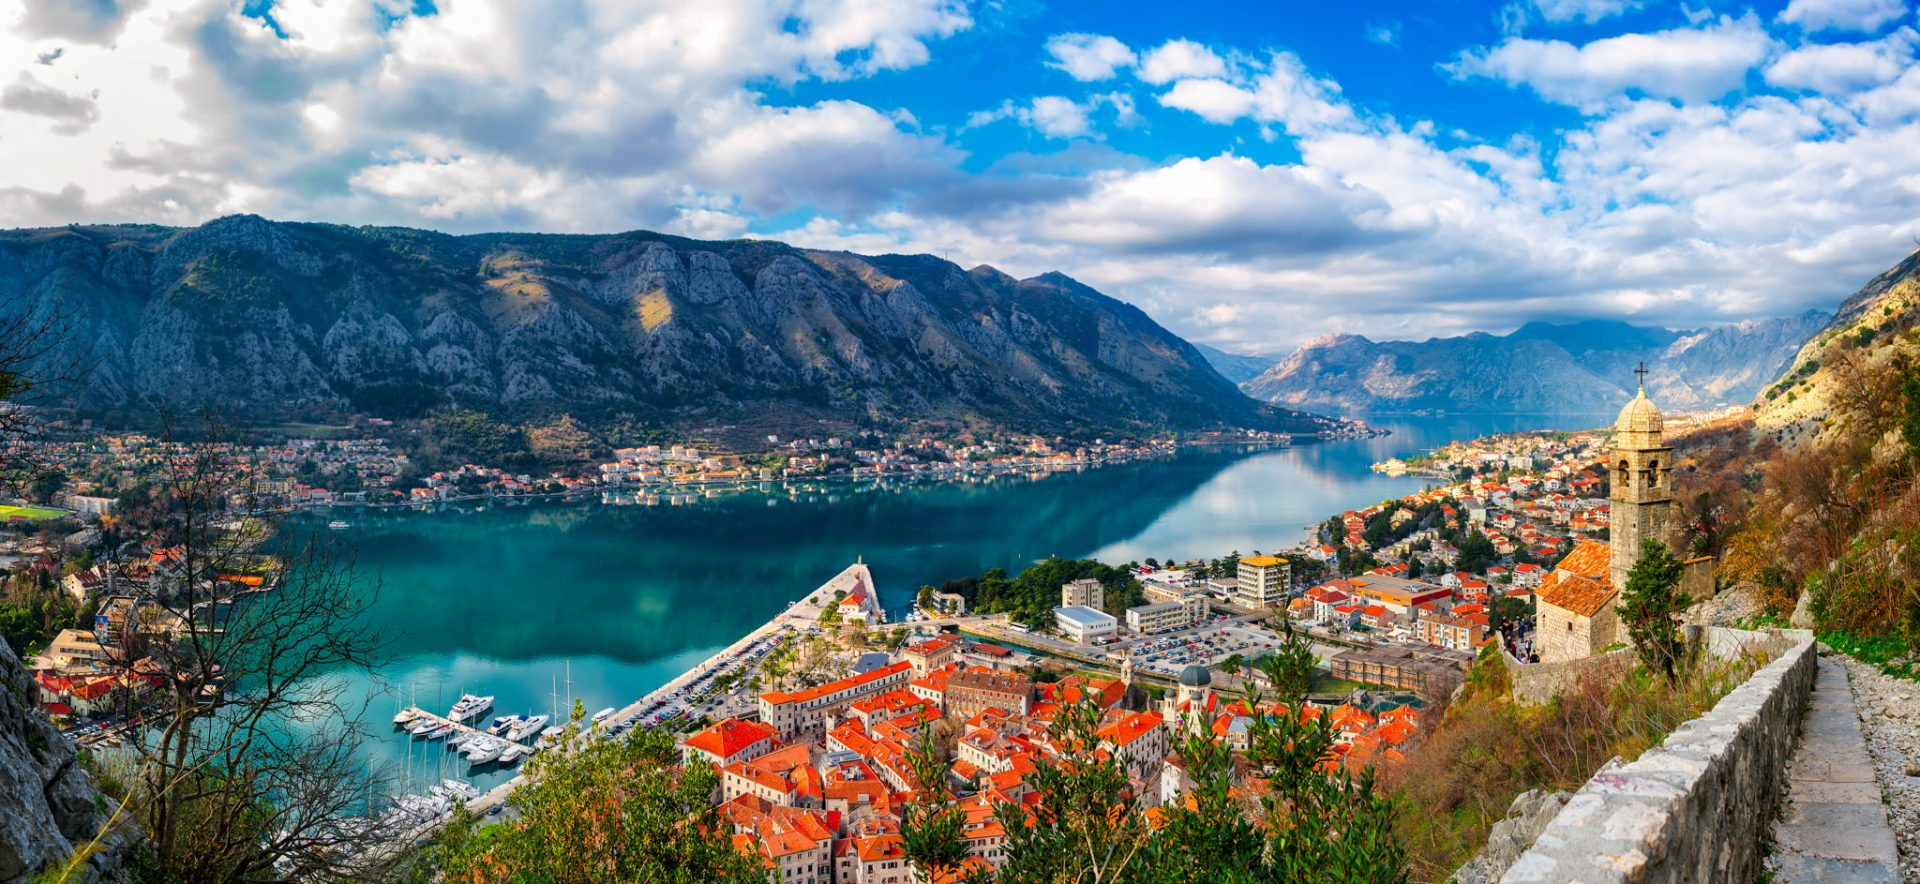 Buscardini: Montenegro is the pearl of the Balkans